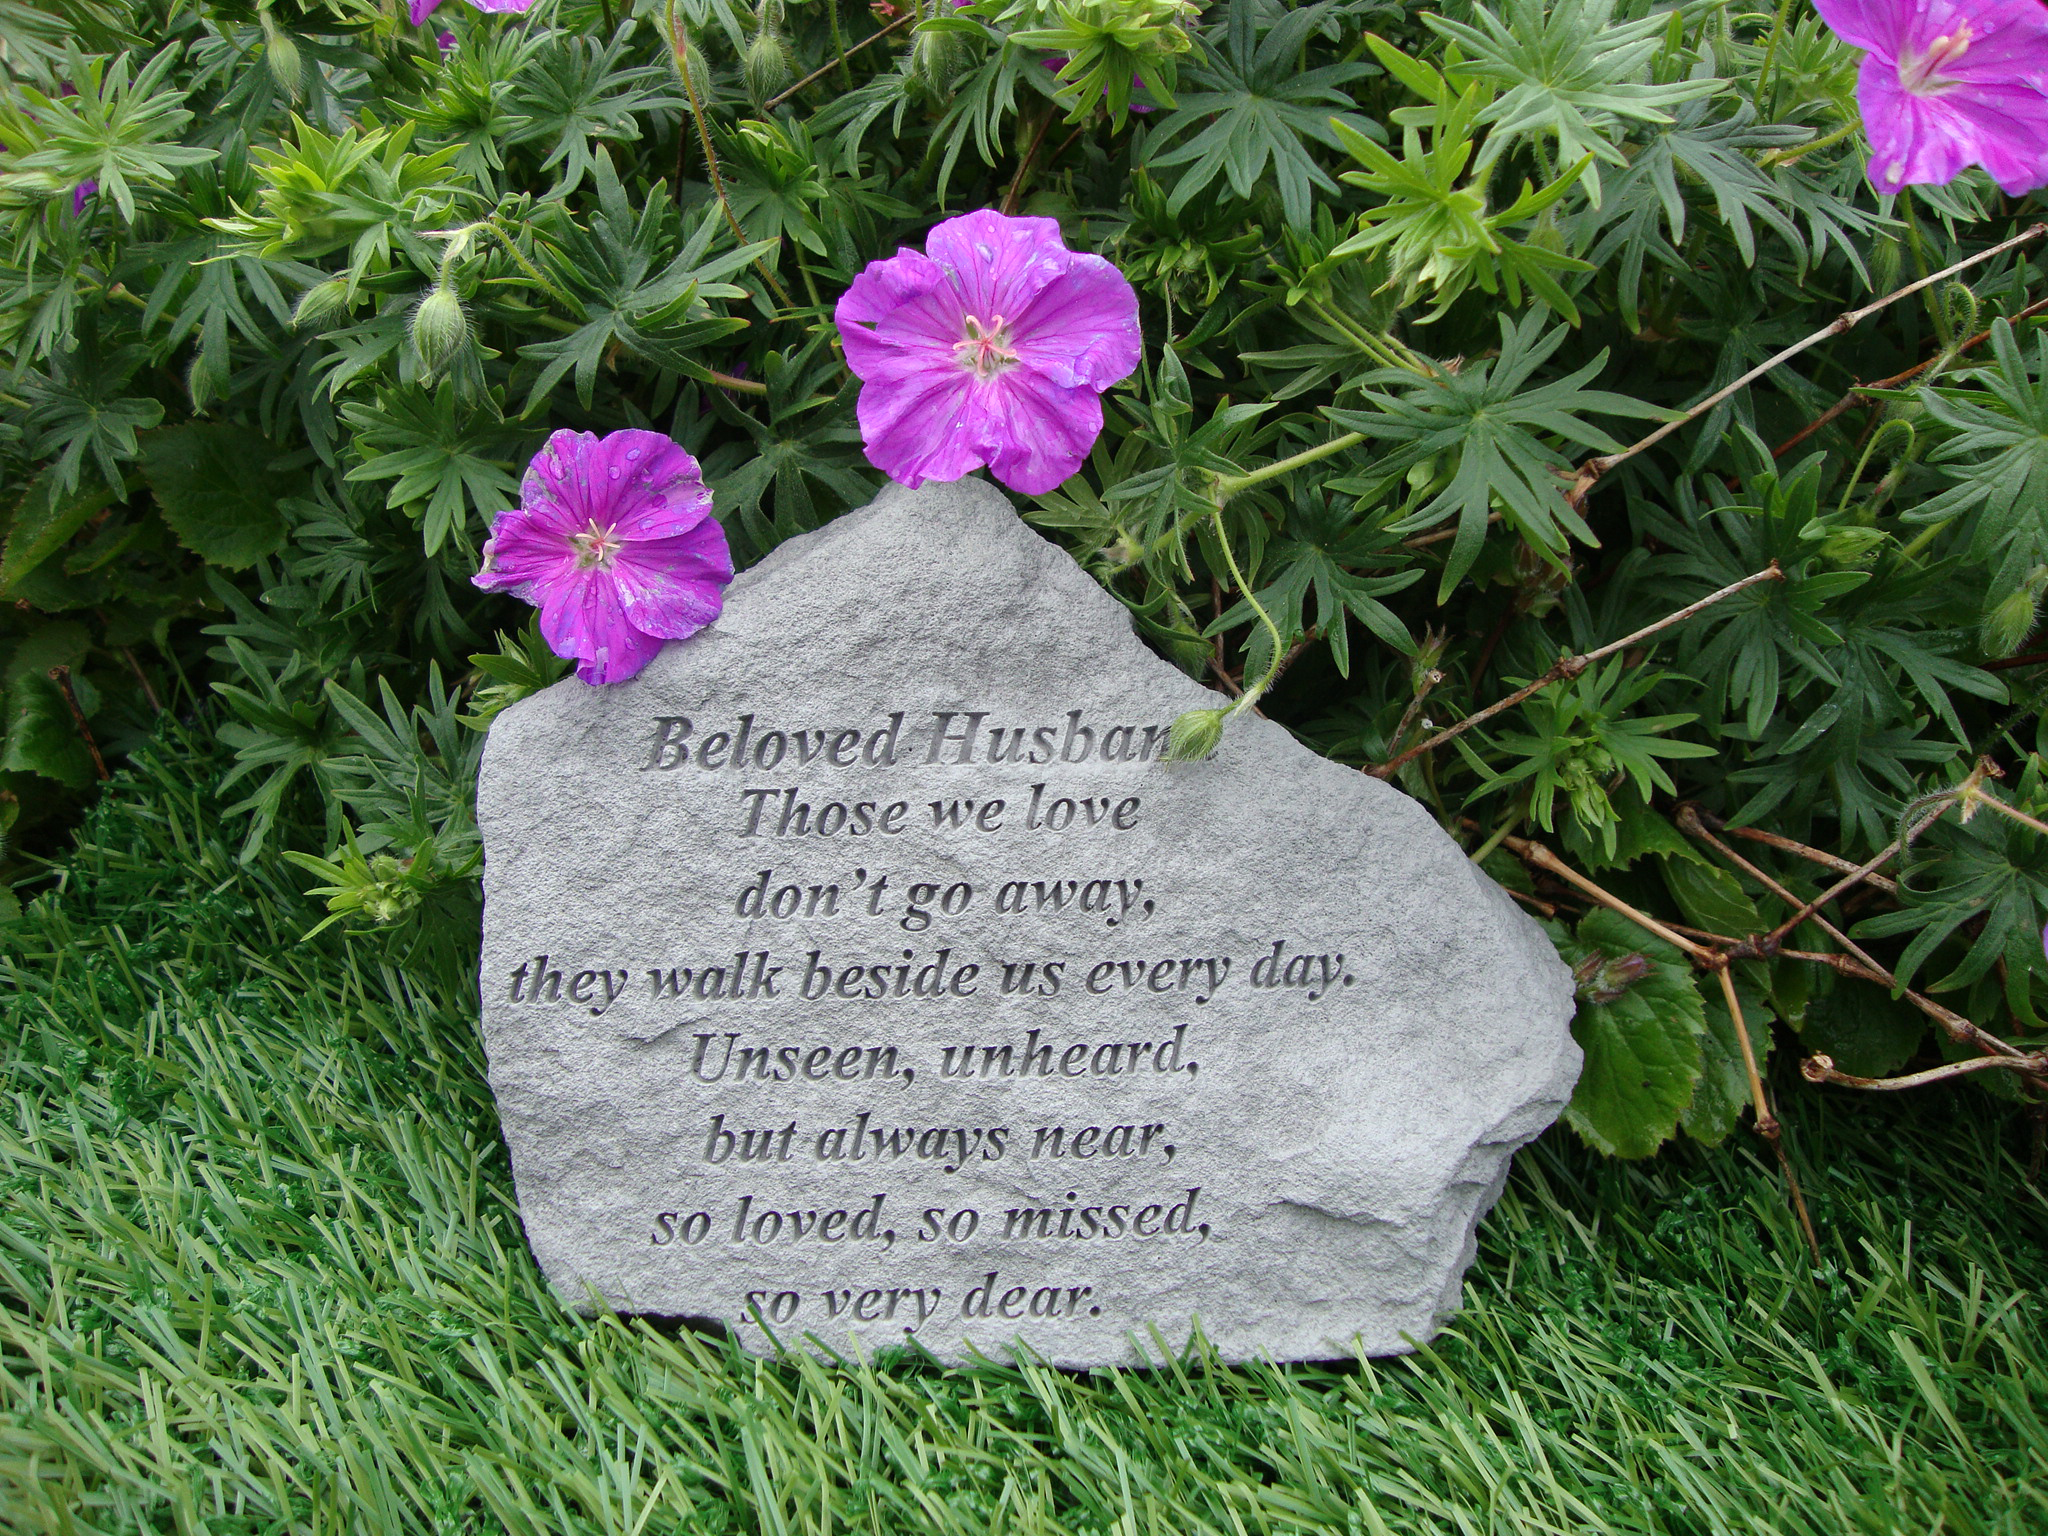 Beloved HUSBAND Memorial Garden Stone Plaque Grave Marker Ornament  Churchyard